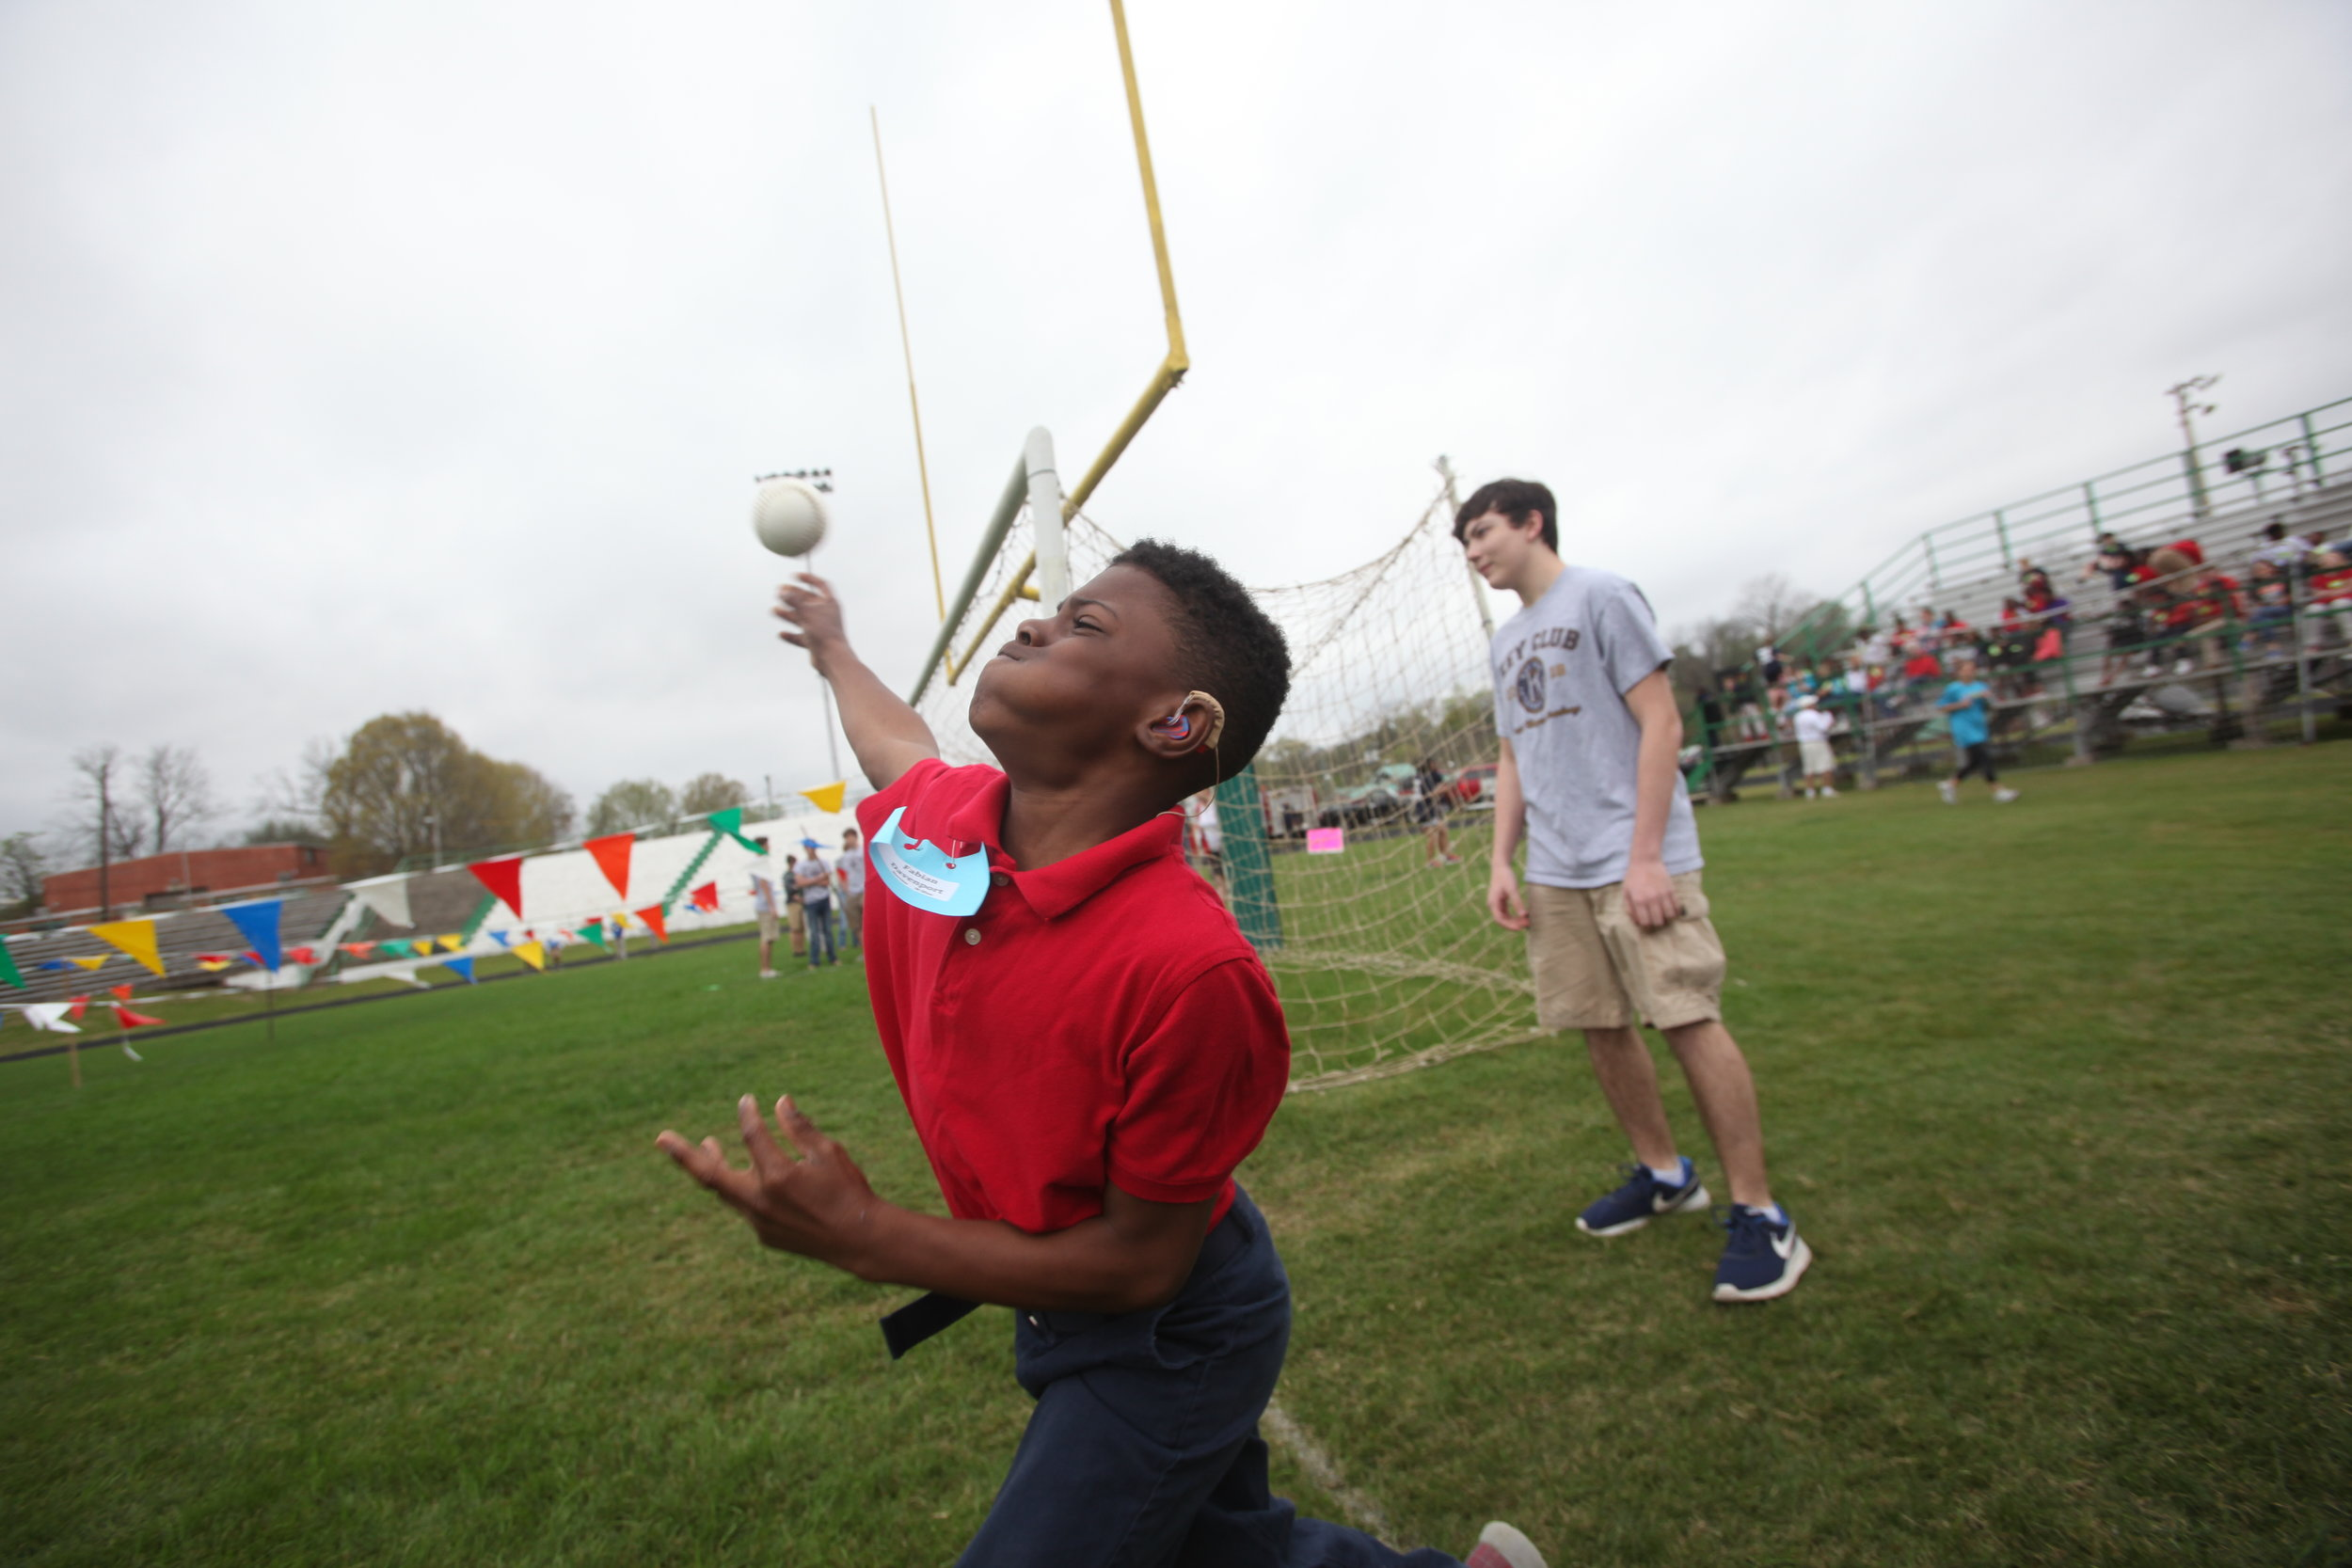 Fabian Davenport  throws during the softball toss event during the Area 10 Special Olympics at Vicksburg High School Tuesday. (Courtland Wells/The Vicksburg Post)